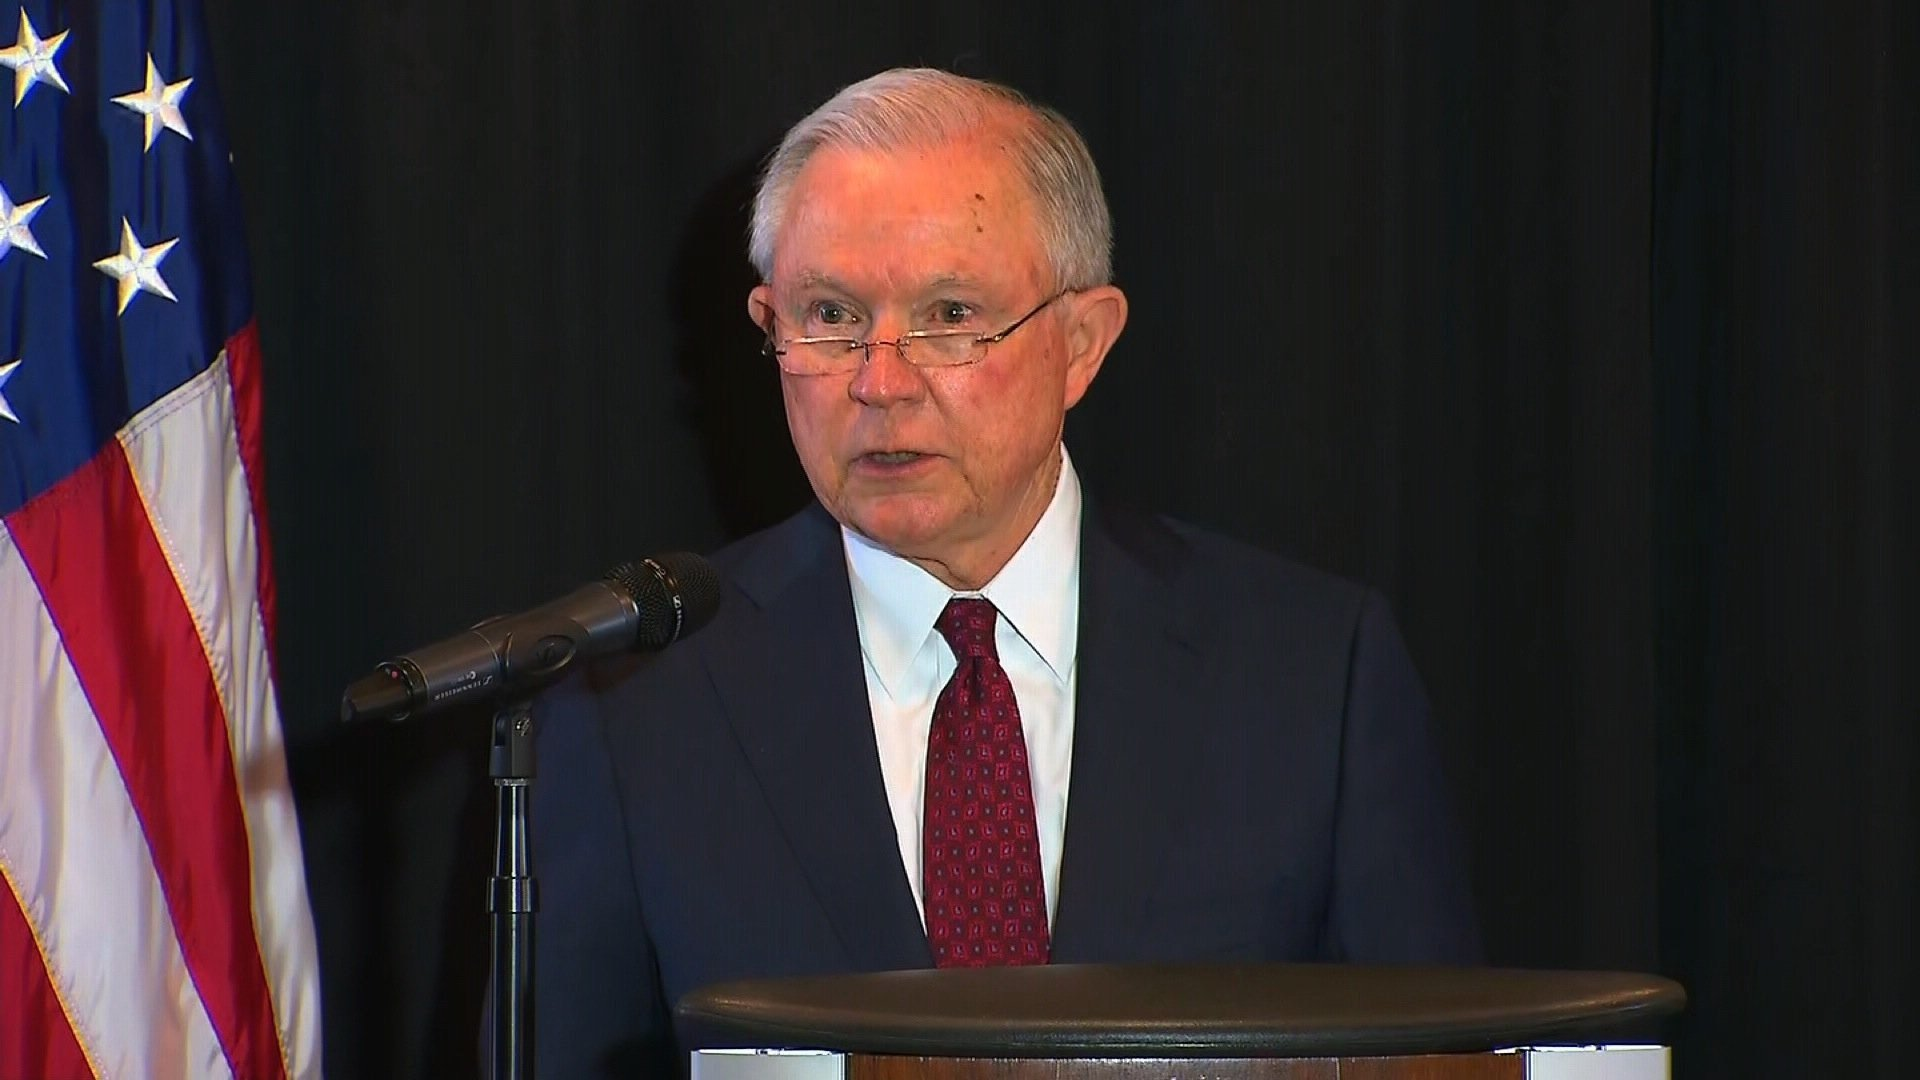 The changes being implemented by the Department of Homeland Security come on the heels of Attorney General Jeff Sessions' decision last month that gang and domestic violence victims no longer qualify for asylum. (FILE)